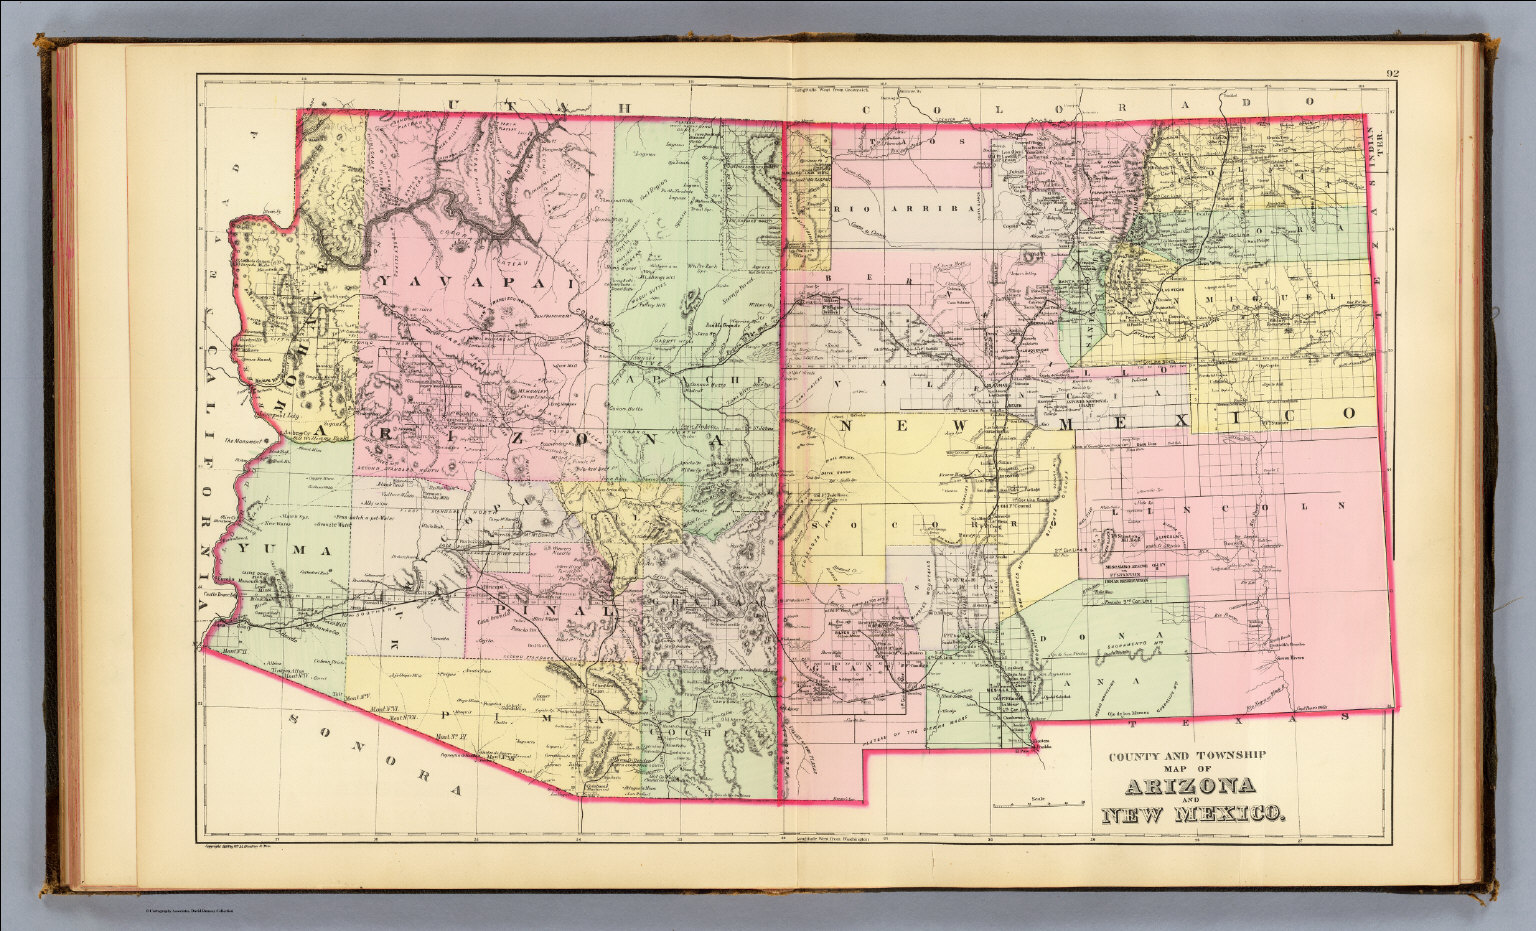 Arizona, New Mexico. - David Rumsey Historical Map Collection